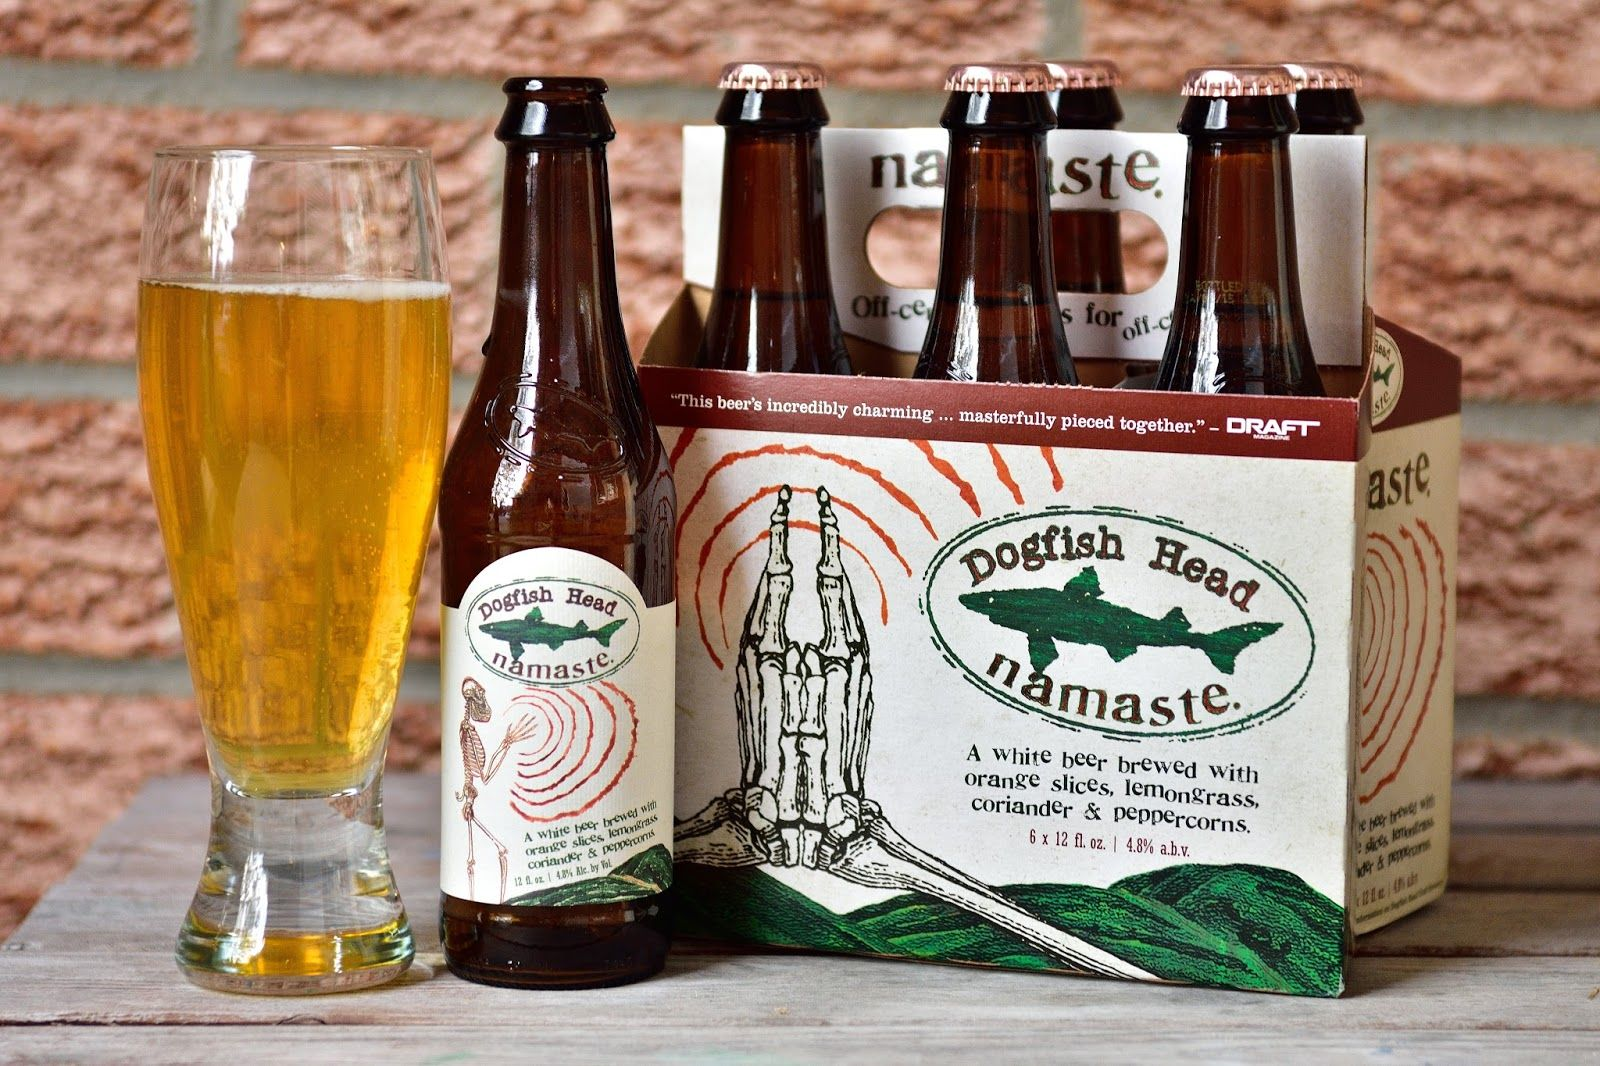 Dogfish Head Namaste: a white beer brewed with orange slices, lemongrass, coriander & peppercorn. Via Beer O'Clock: June 2015